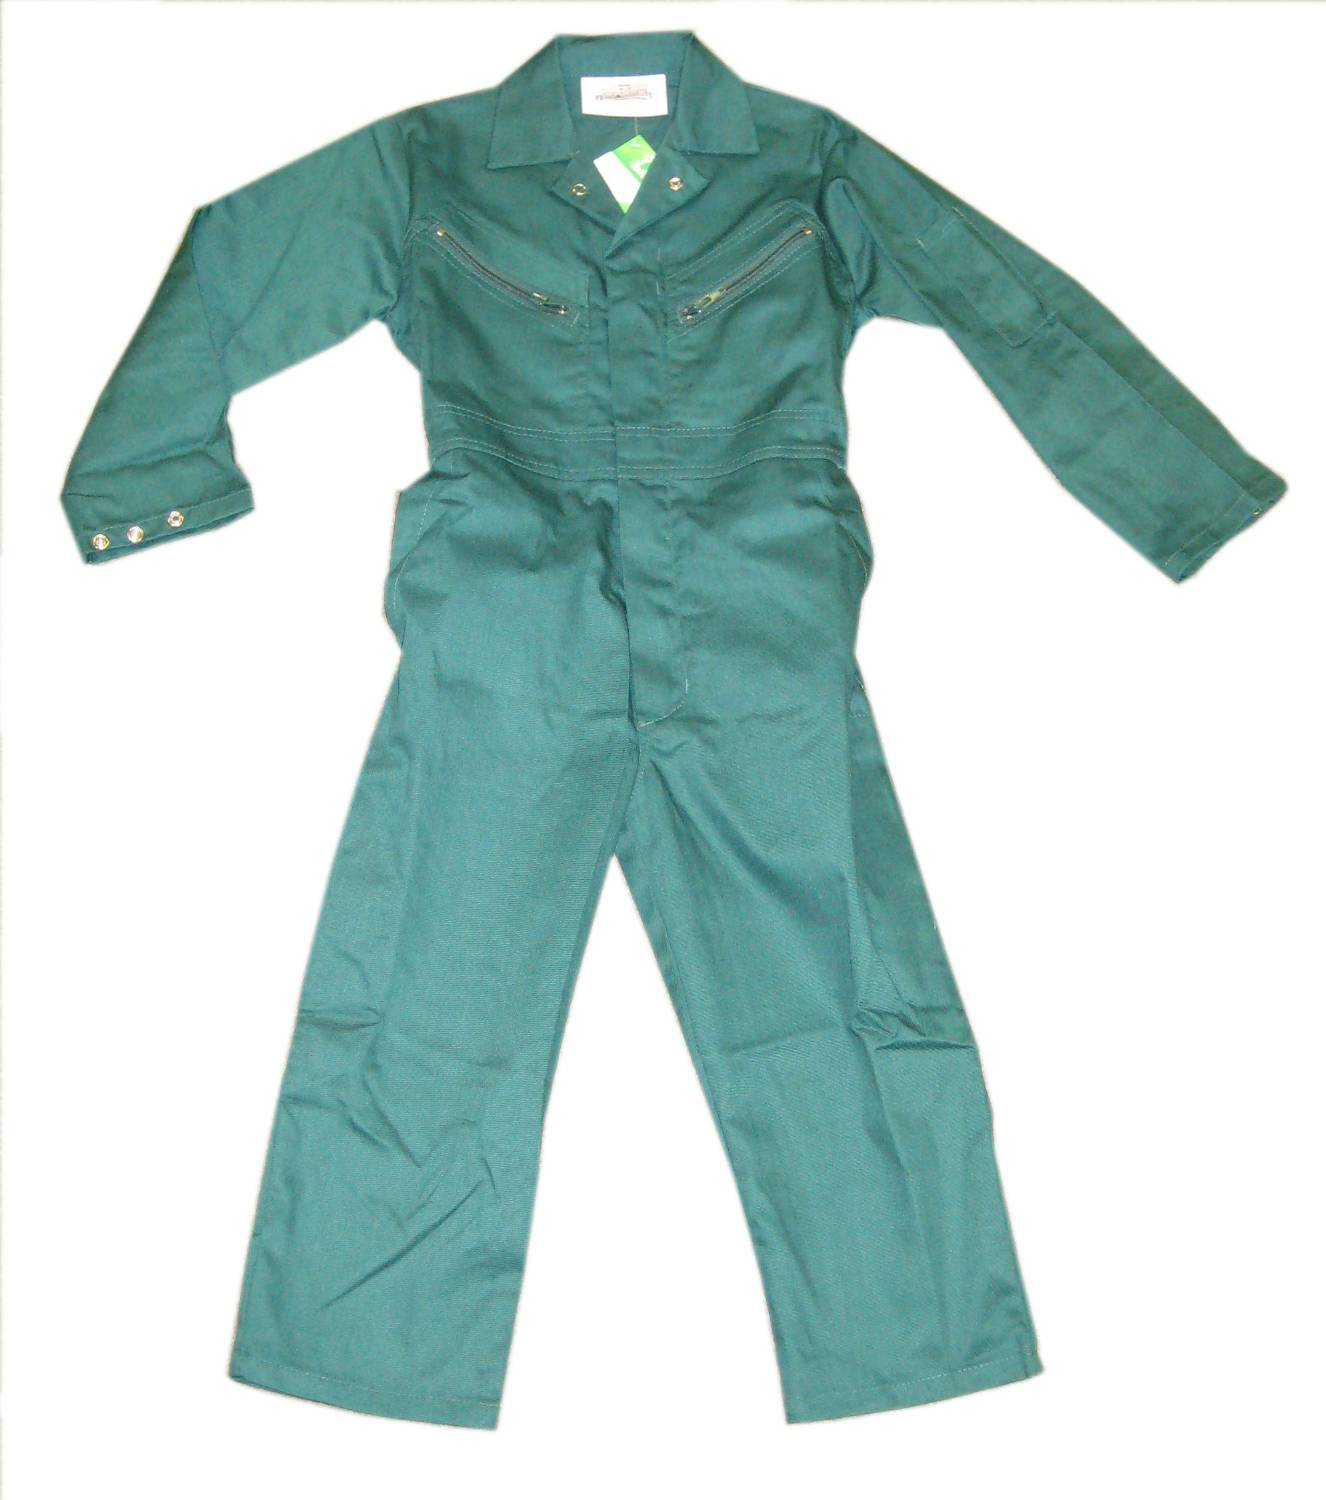 Monsoon Tractor Suit Green 12/13 Yrs Xcgg